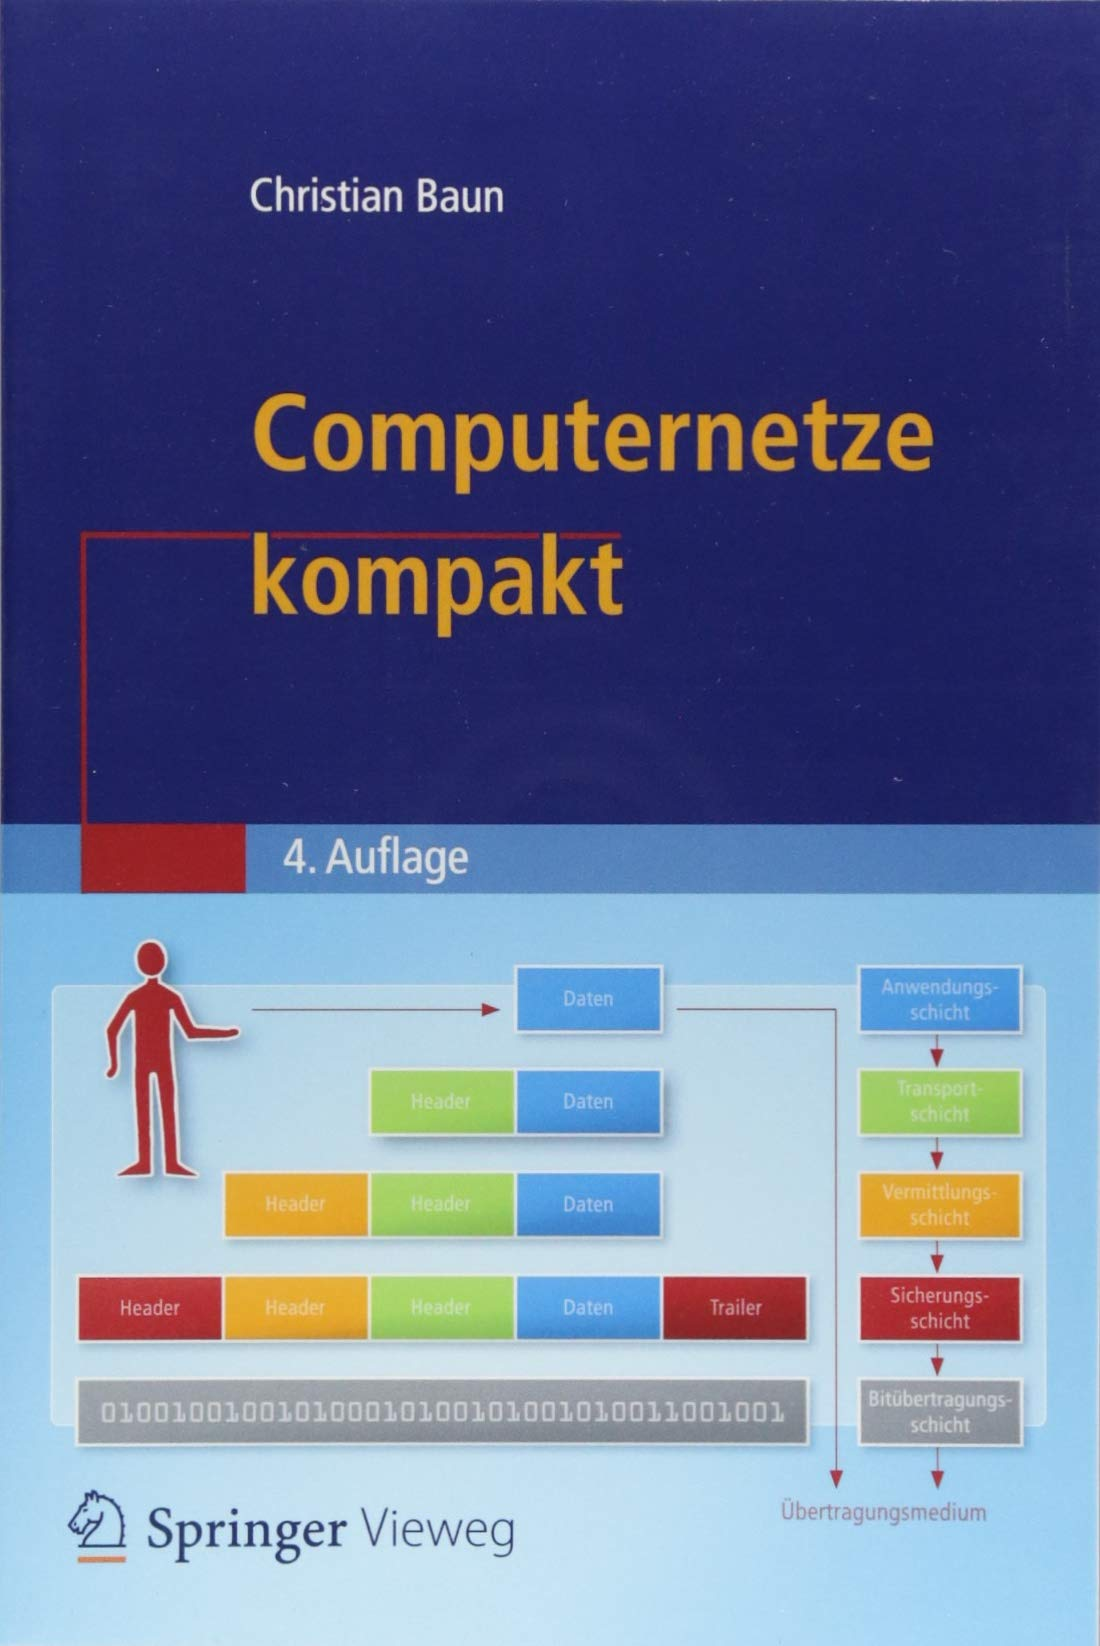 Computernetze kompakt (IT kompakt) Taschenbuch – 25. Juli 2018 Christian Baun Springer Vieweg 3662574683 Computer / PC-Hardware